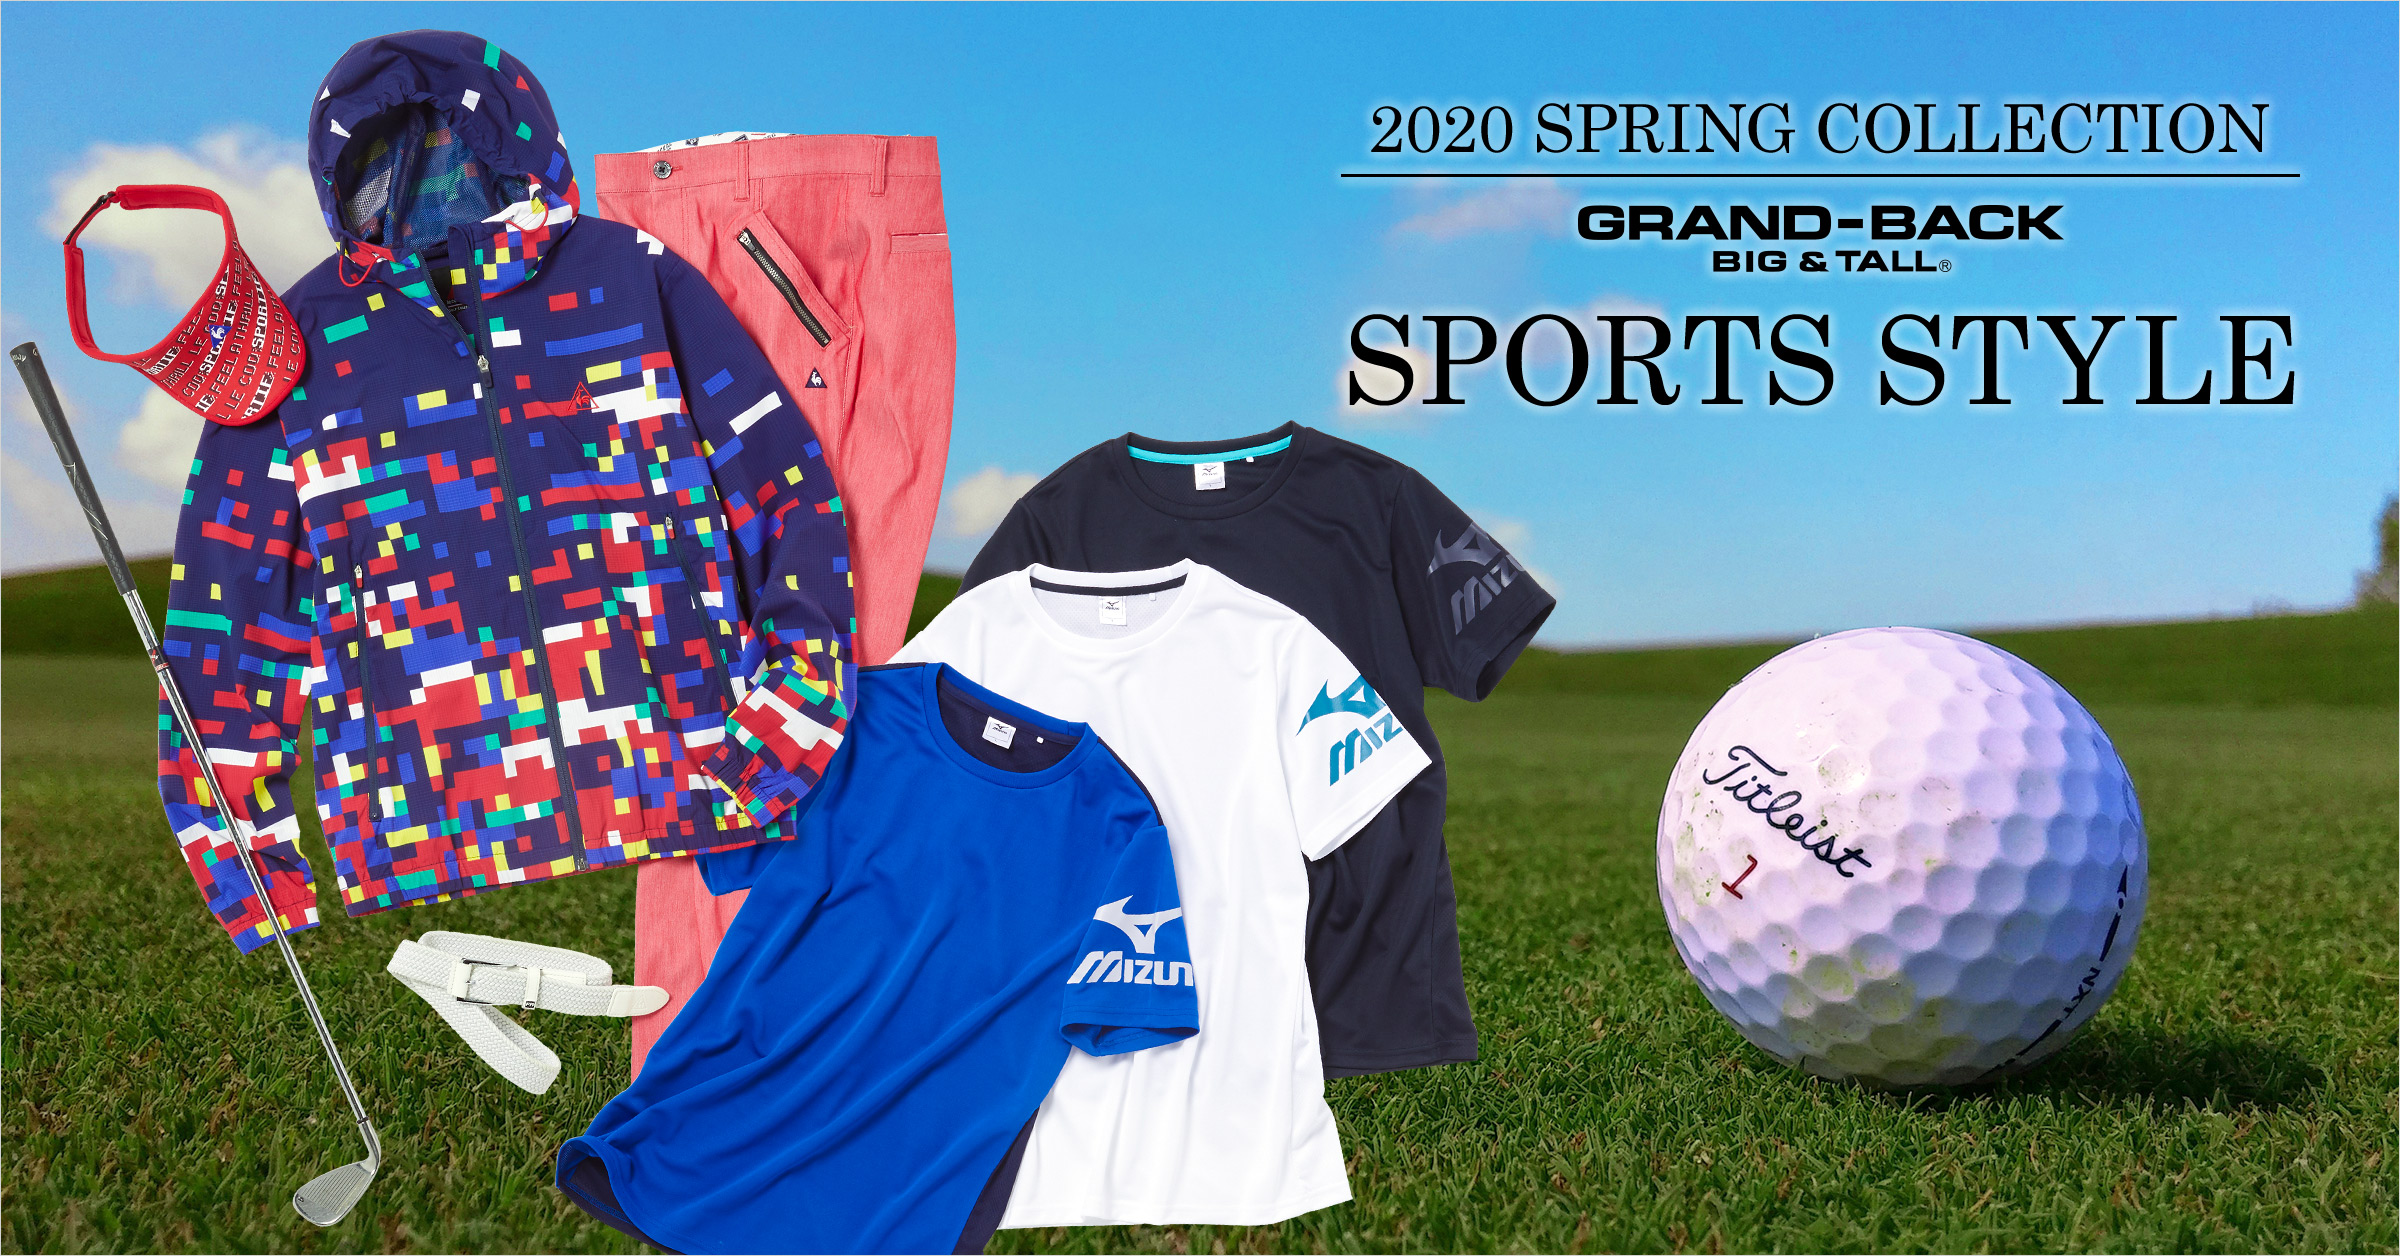 GRANBACK 2020.spring sports style